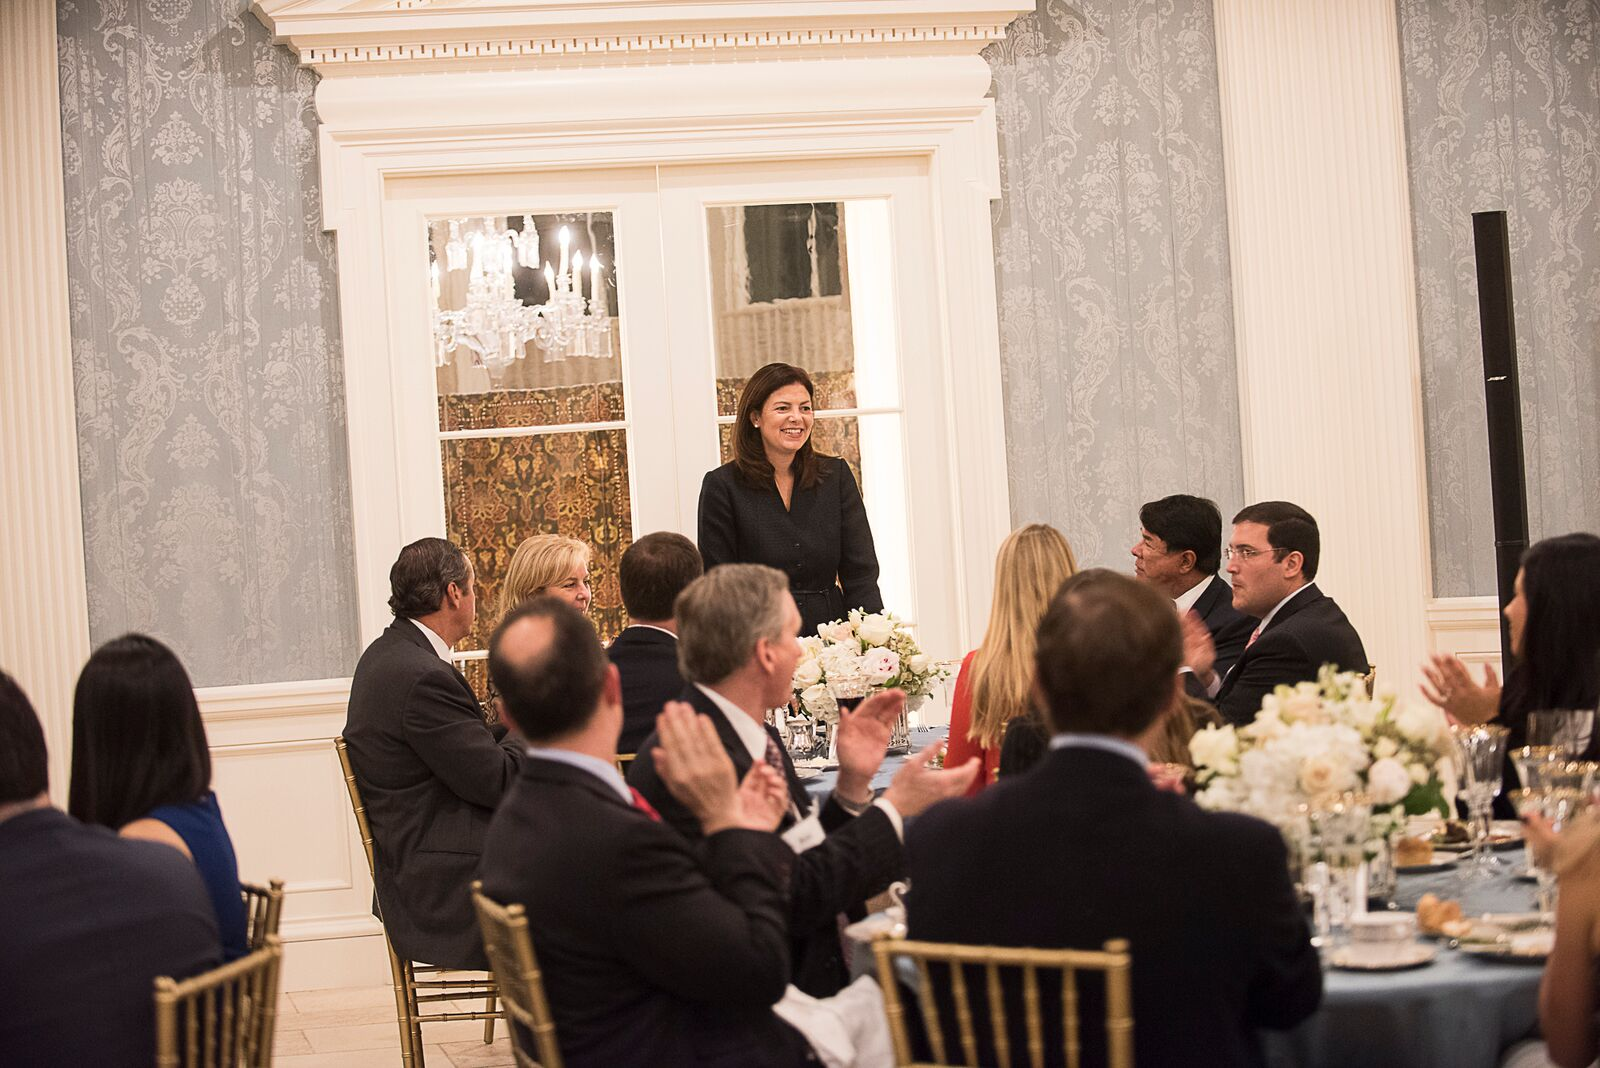 Former Senator Kelly Ayotte gives remarks at the RNC Presidential Trust Dinner in Dallas in 2015.